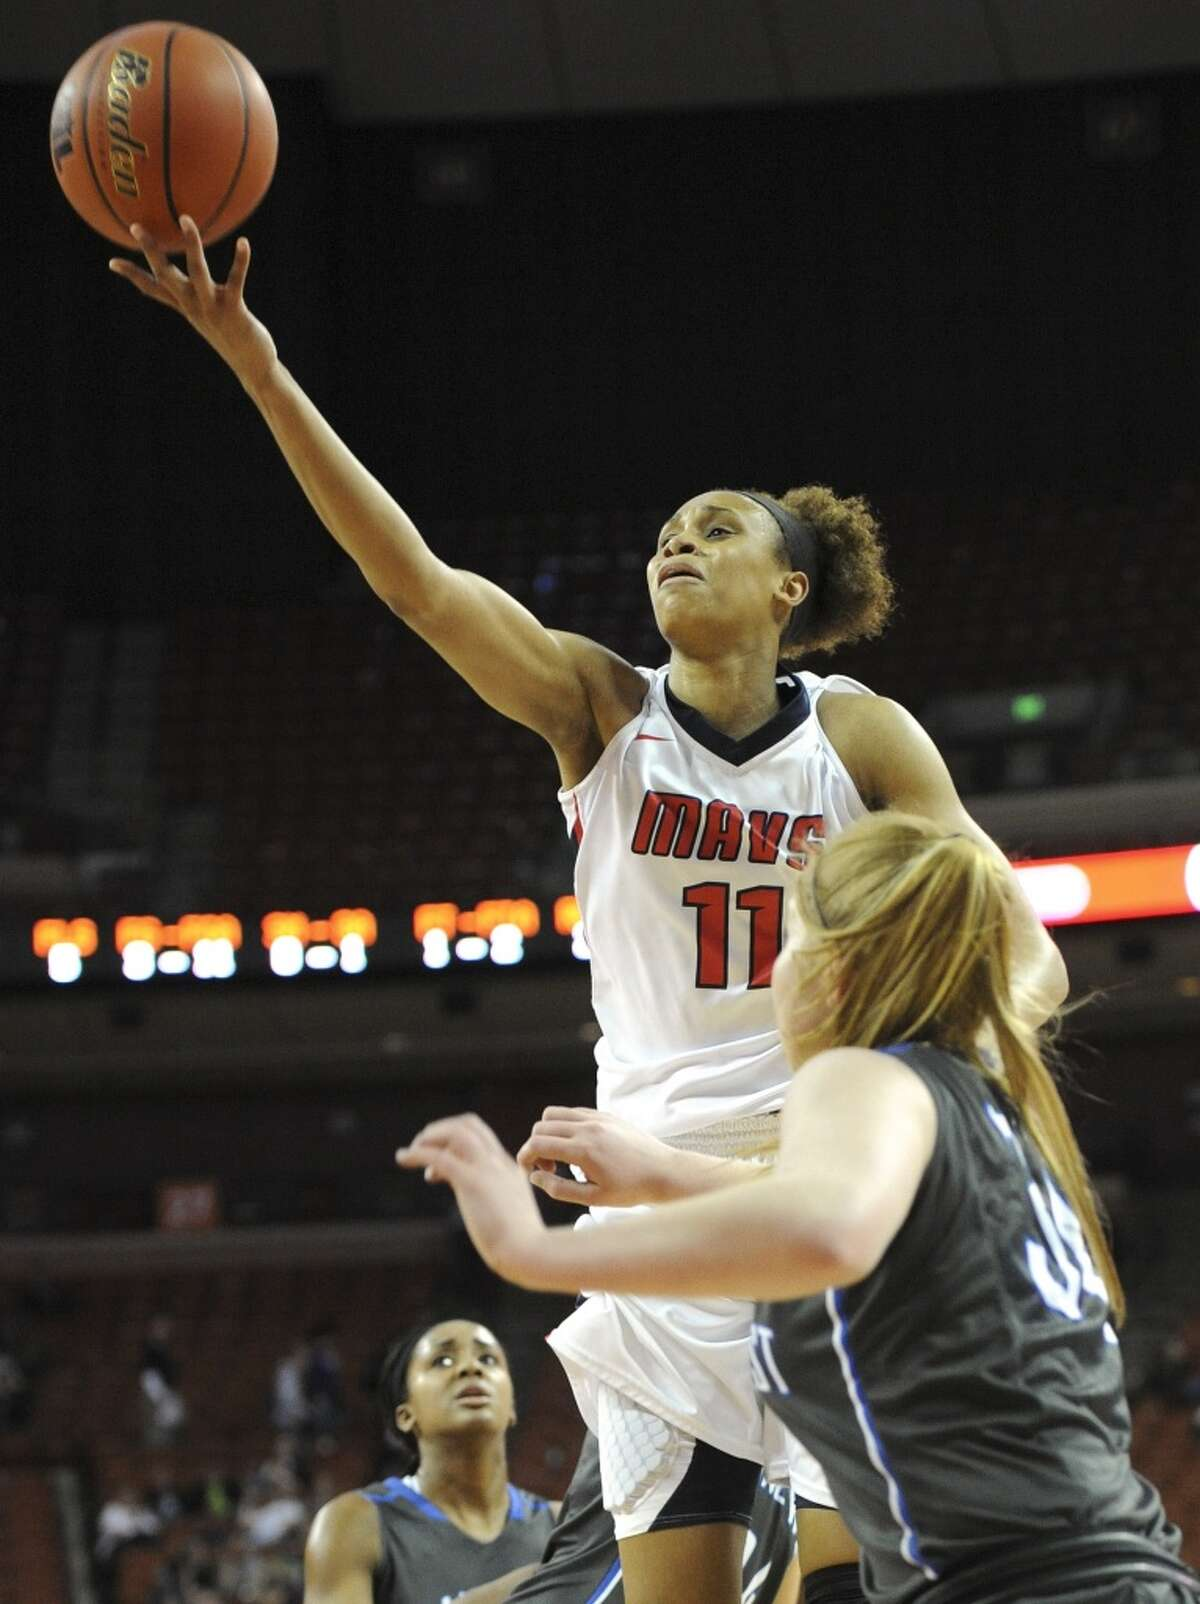 Brianna Turner Sr., F, Manvel The Notre Dame signee and WBCA All-American will graduate as one of the most decorated prep players in history as her honors include four Team USA gold medals and two state championships.